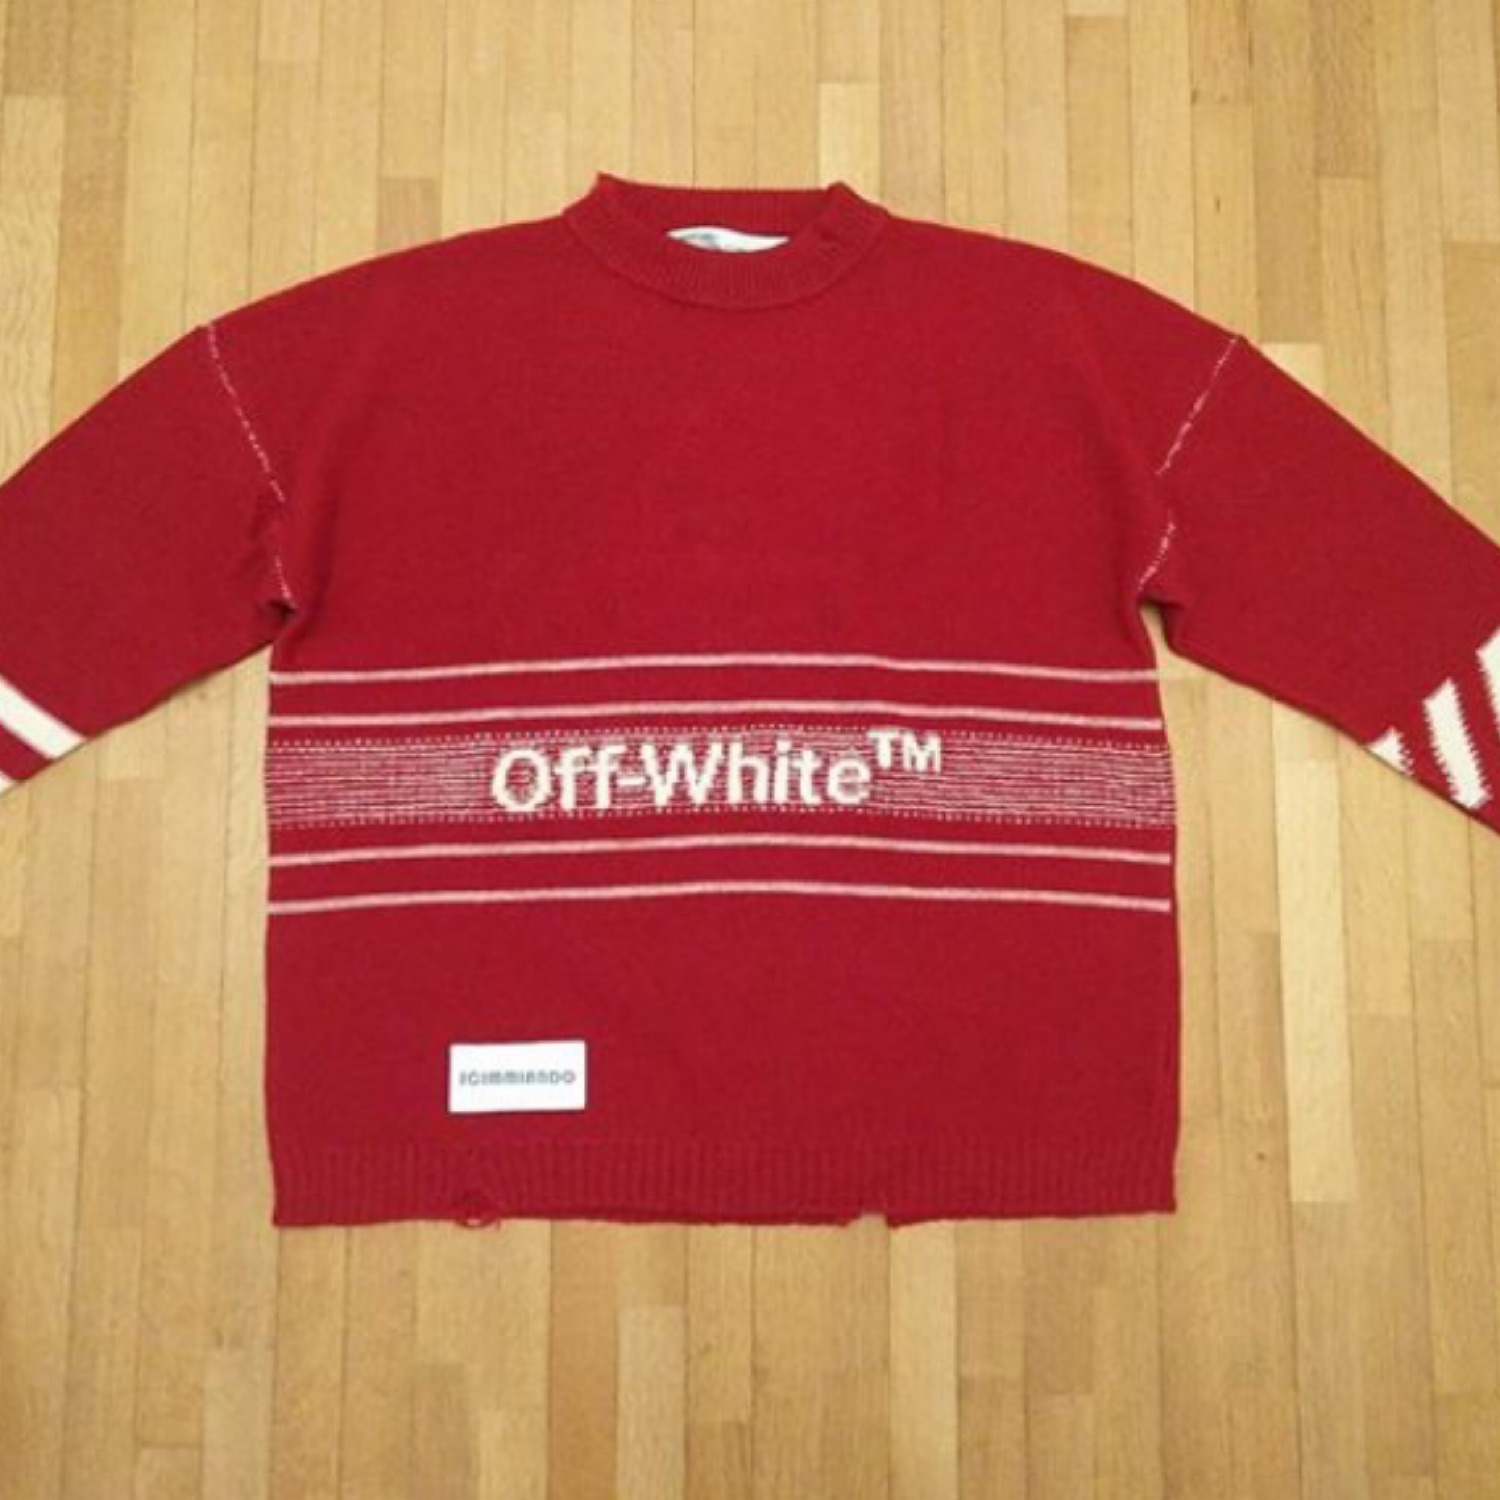 Off White Red Knitwear Fw 18